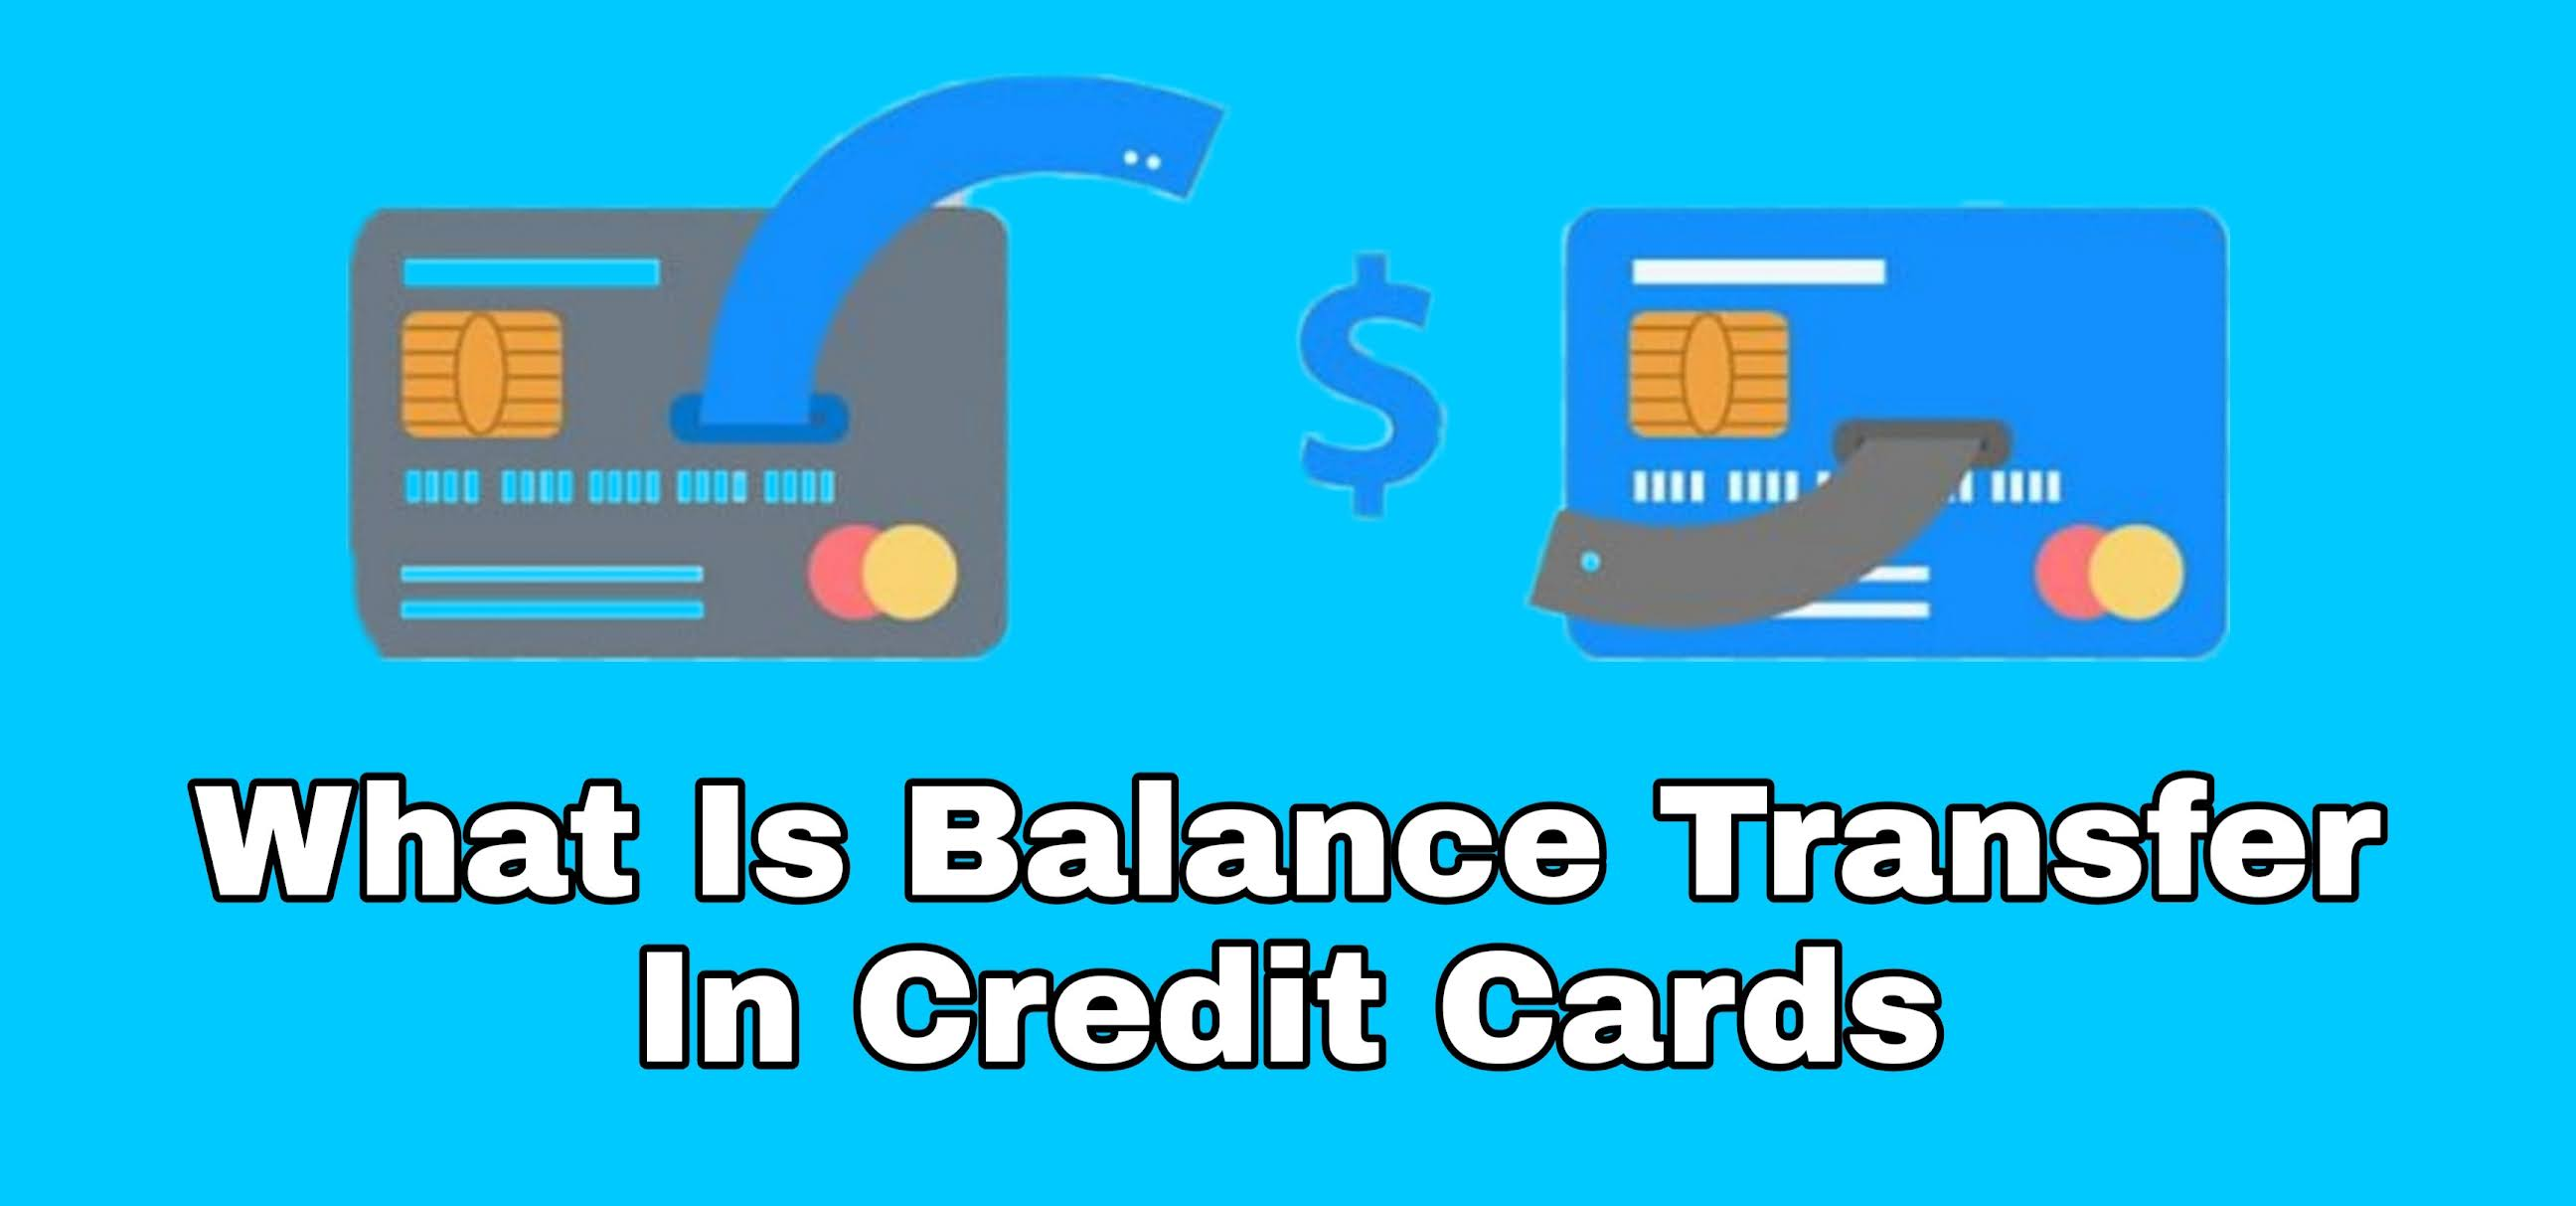 What Is Balance Transfer In Credit Cards